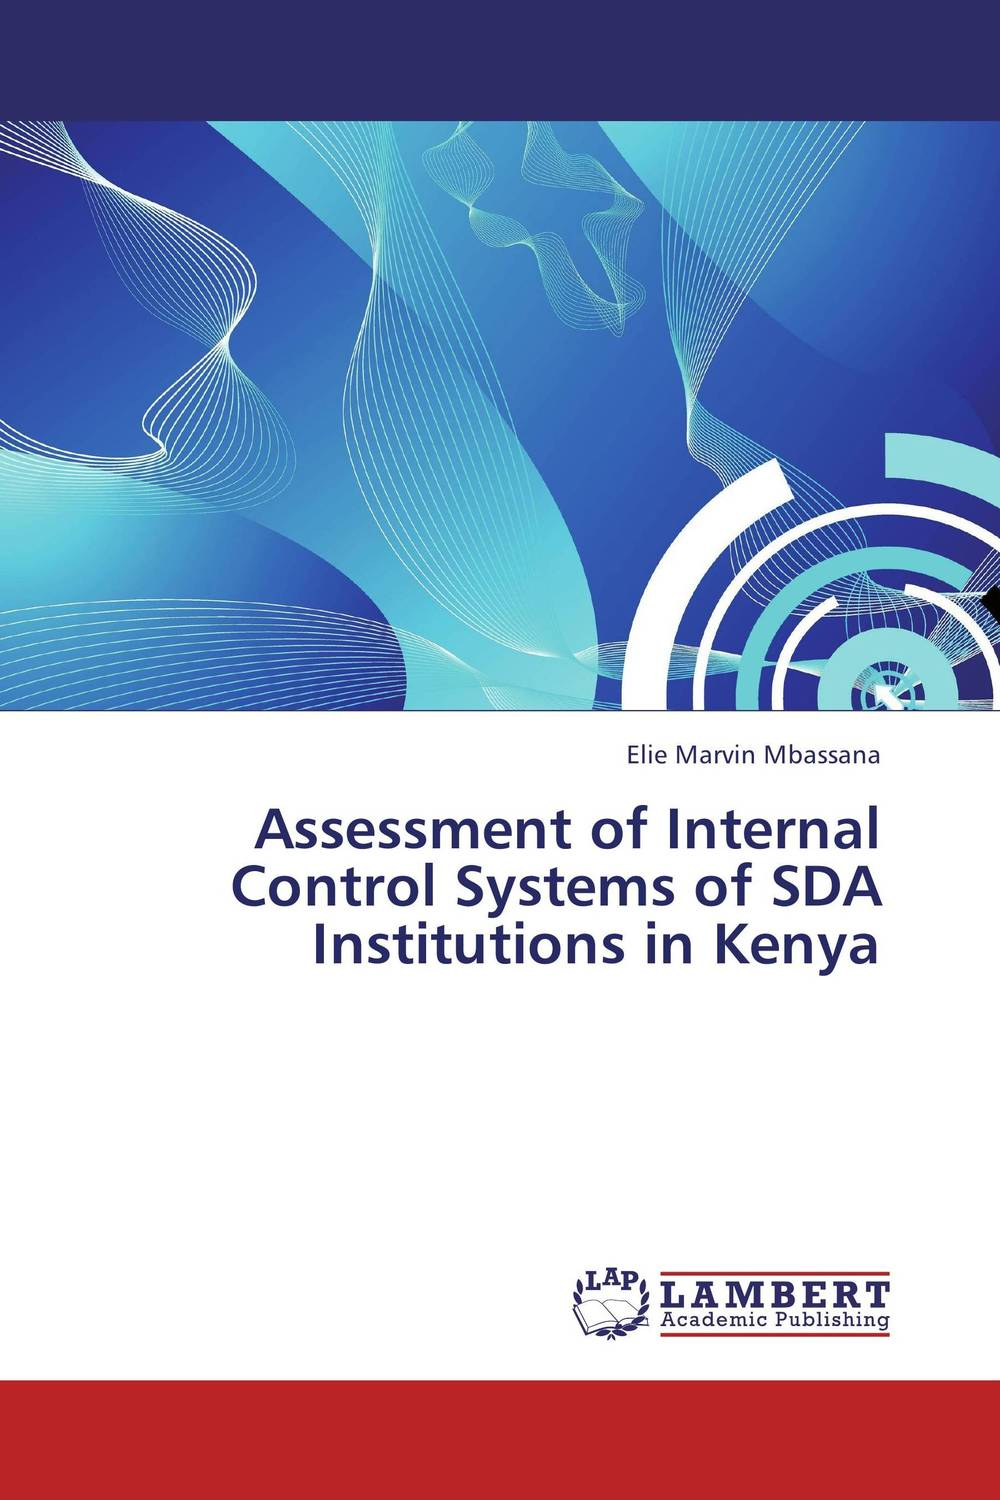 Assessment of Internal Control Systems of SDA Institutions in Kenya evaluation of the internal control practices